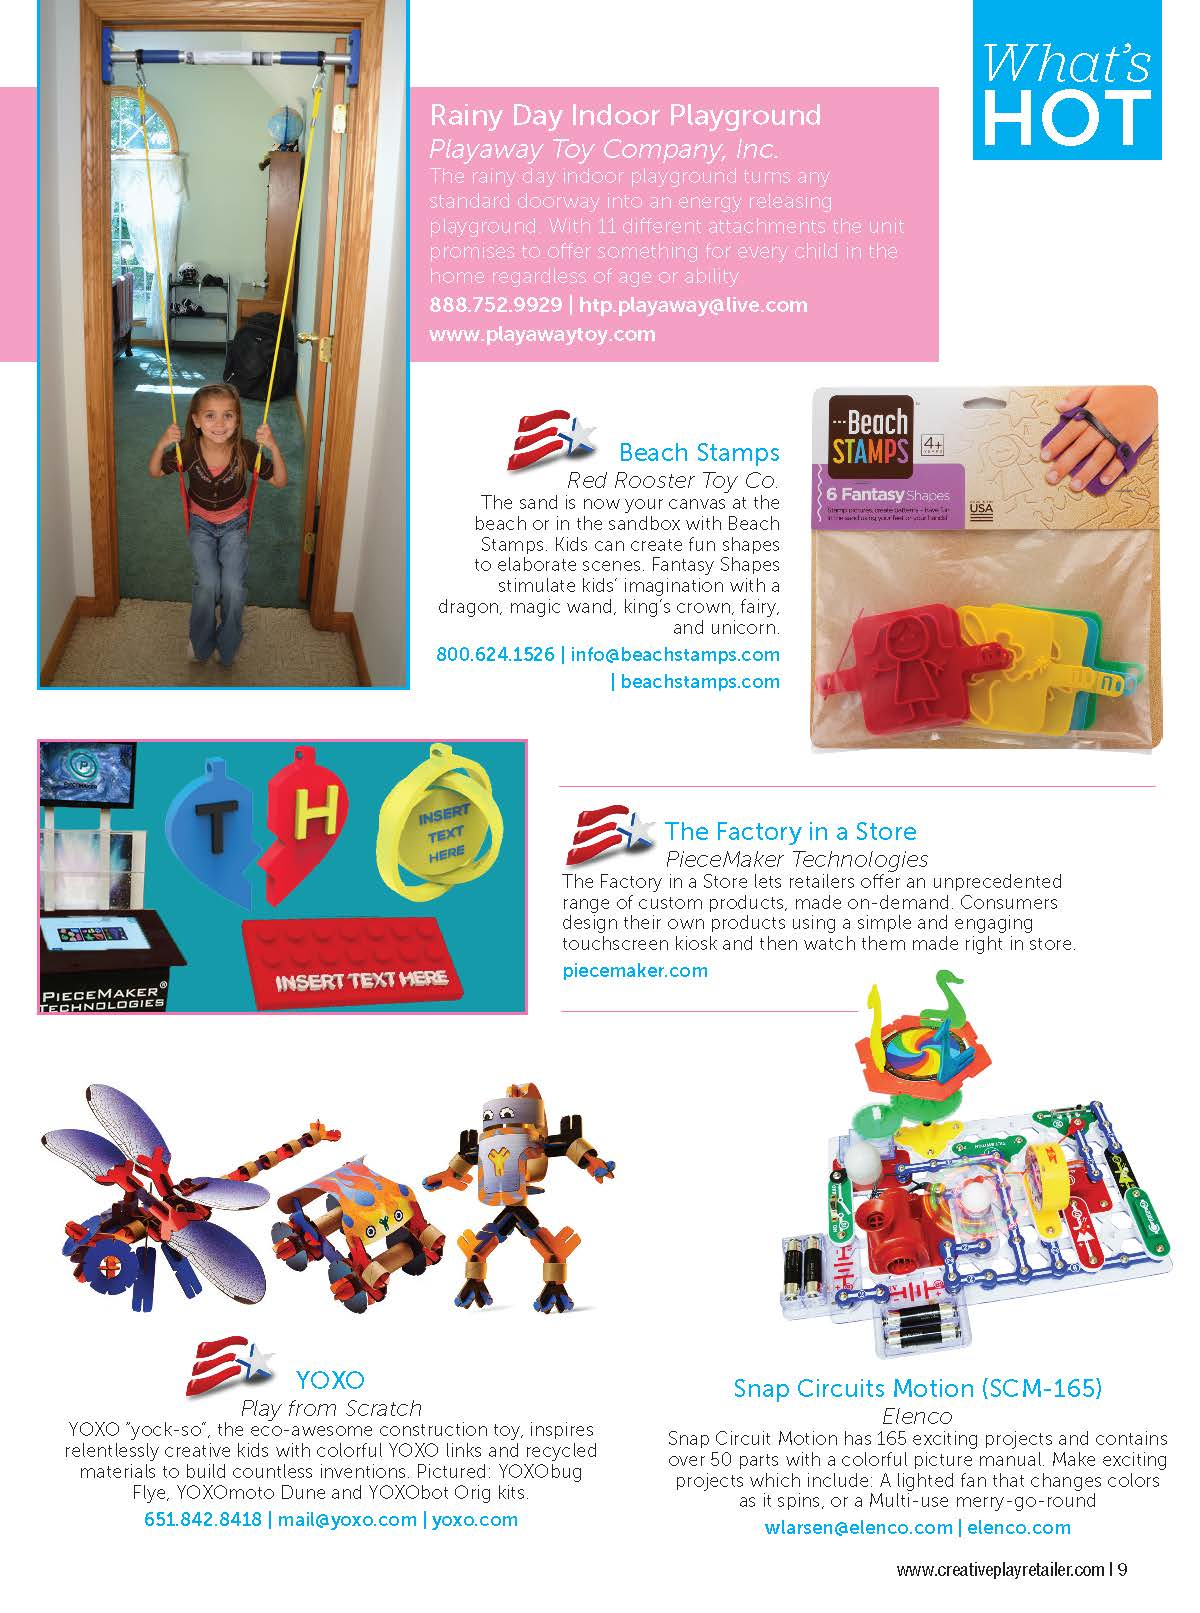 Creative Play Retailer Magazine Snap Circuits 300jrwondefrful Toy8 And Over Kids 9 Page 10